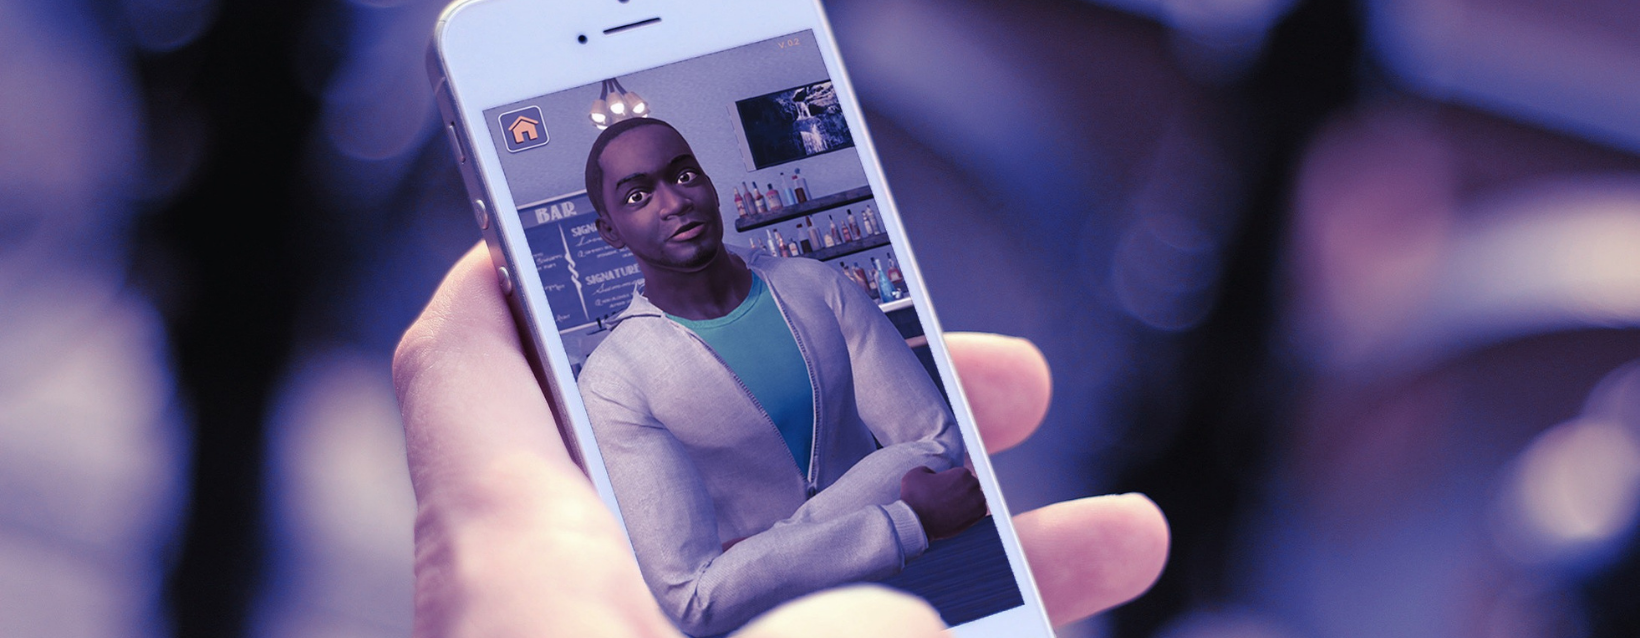 Hand holding phone with screenshot of Tough Talks virtual reality avatar of a Black man in a green shirt and gray hoodie sitting at a bar